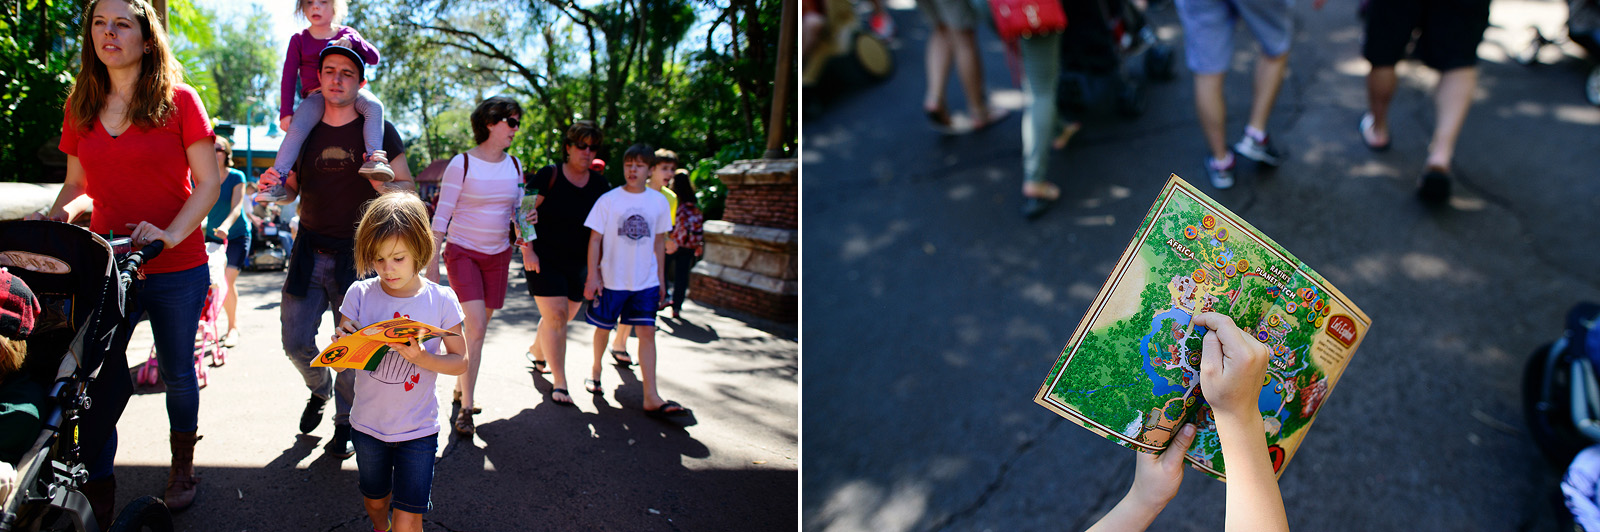 wilderness explorer badges at Animal Kingdom